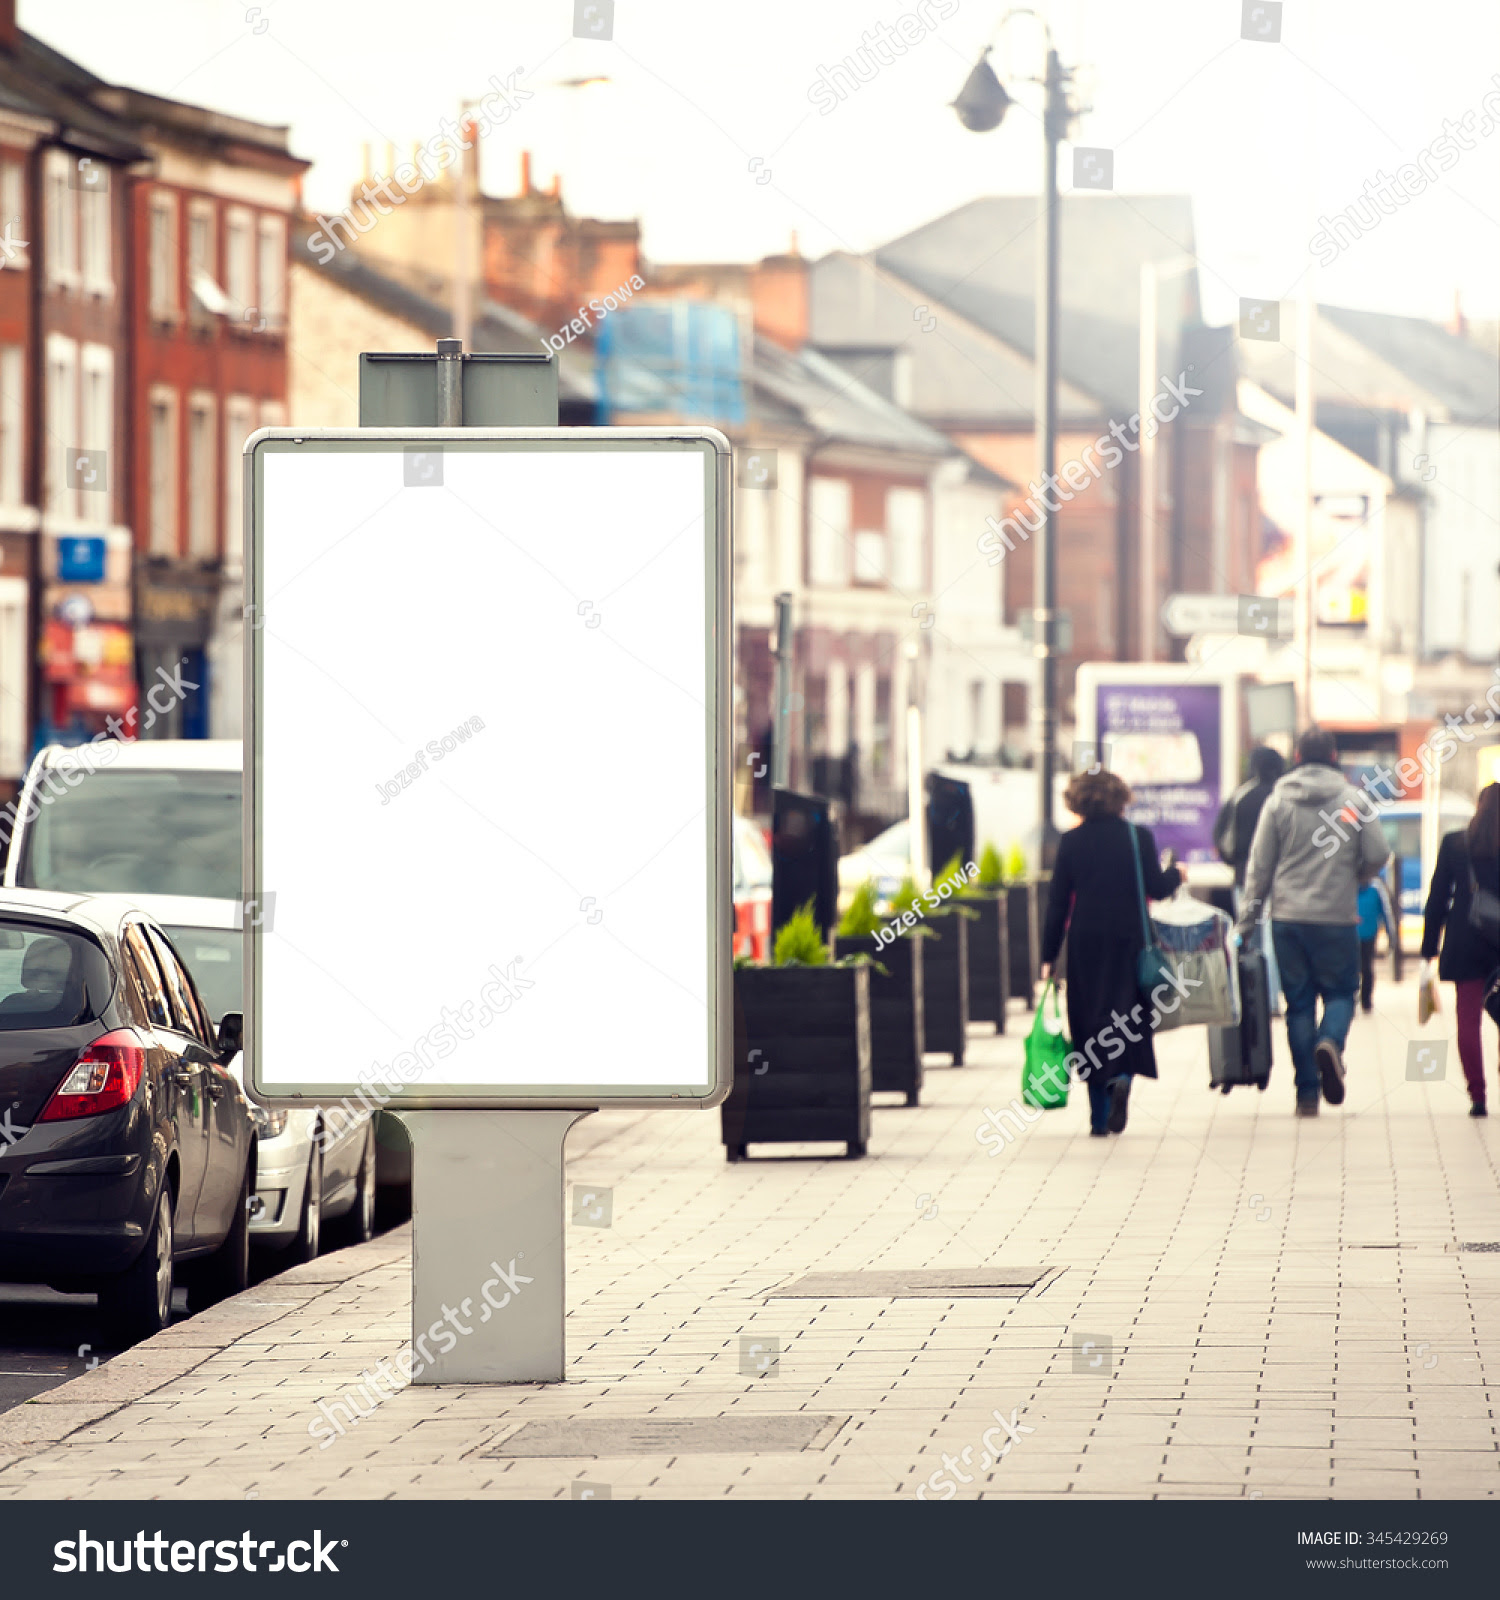 Vertical Isolated Blank Billboard On City Stock Photo 345429269 ...